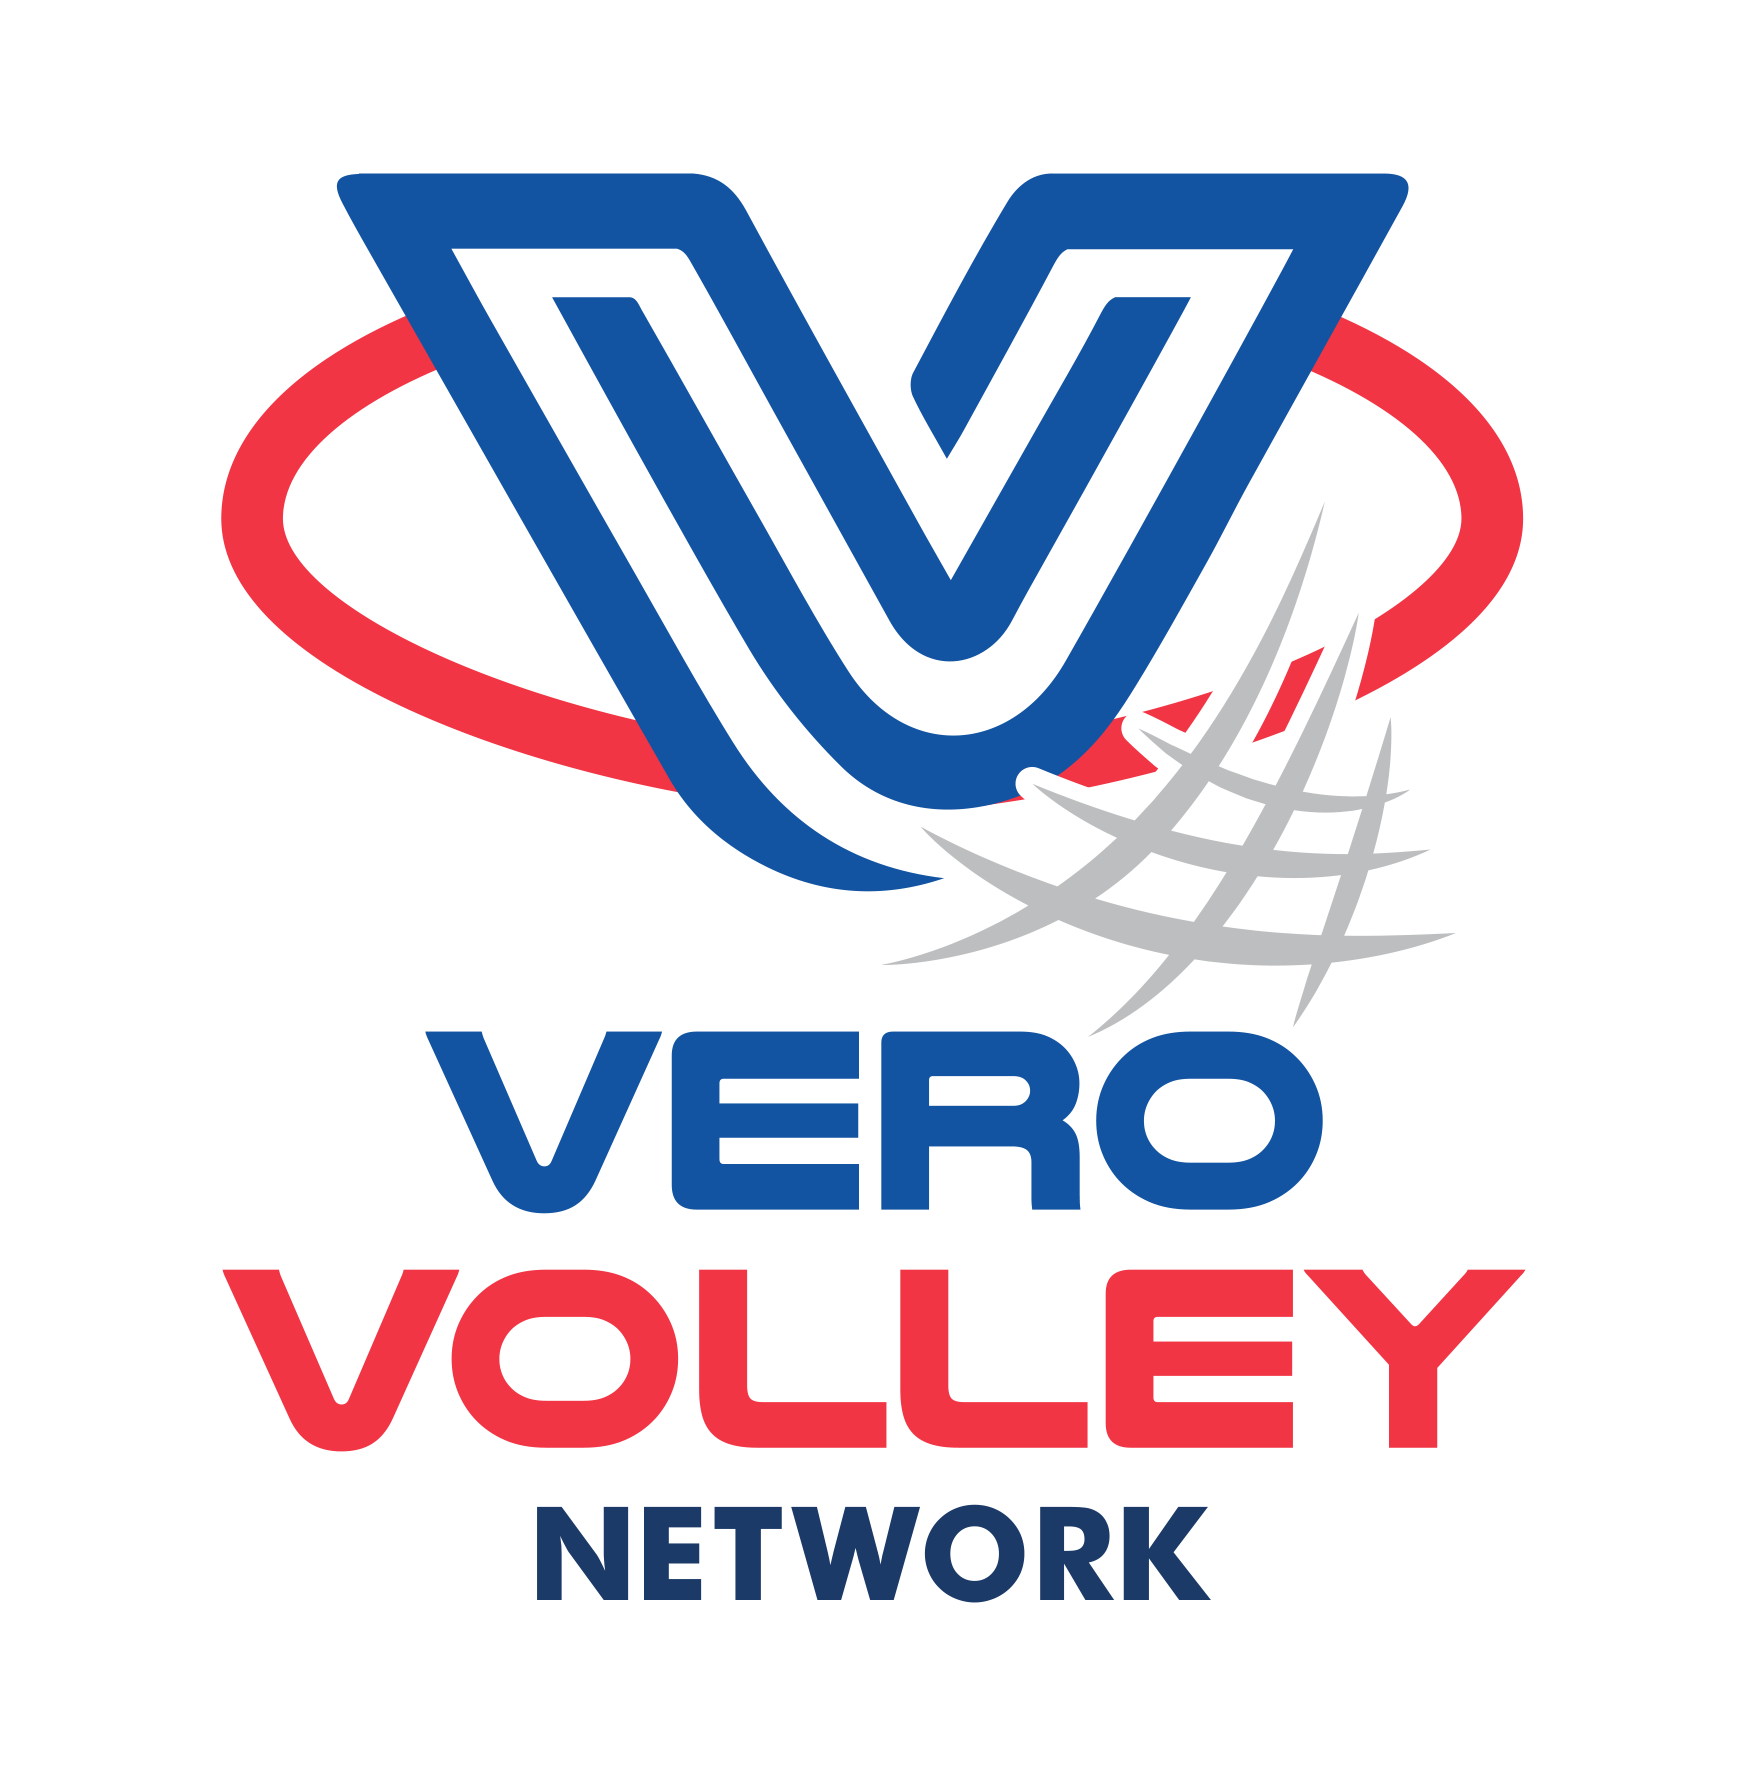 Network Vero Volley